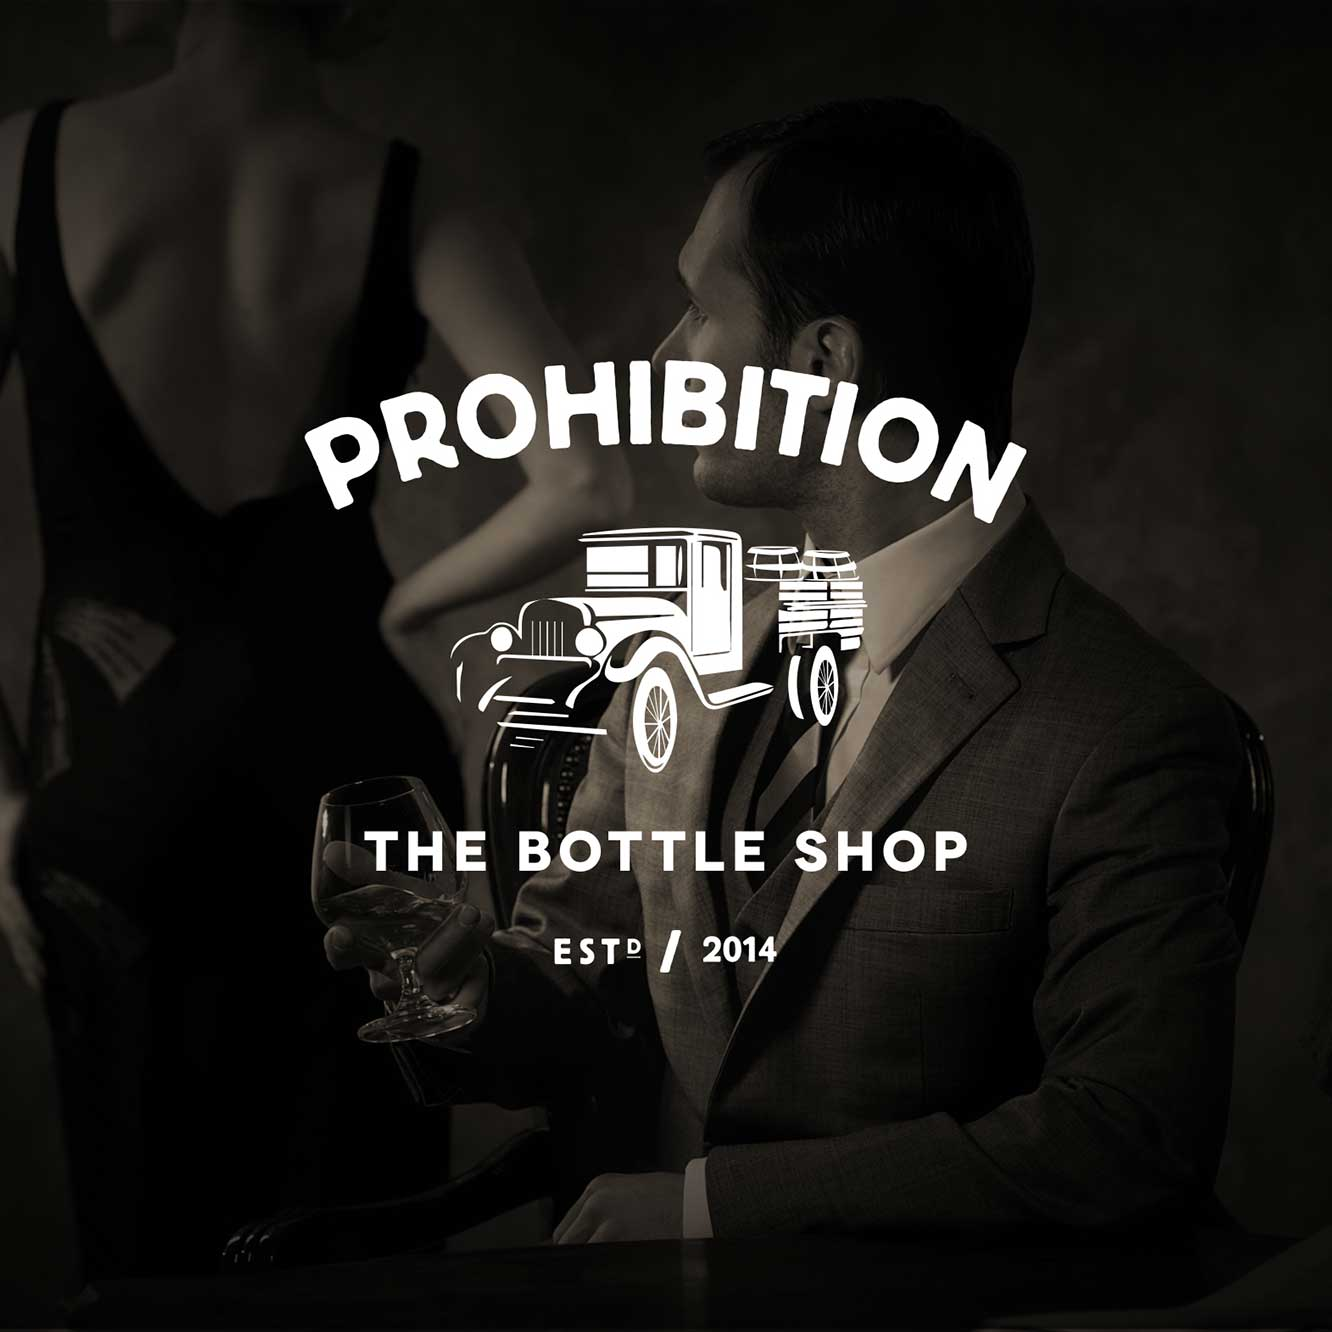 Prohibition: The Bottle Shop